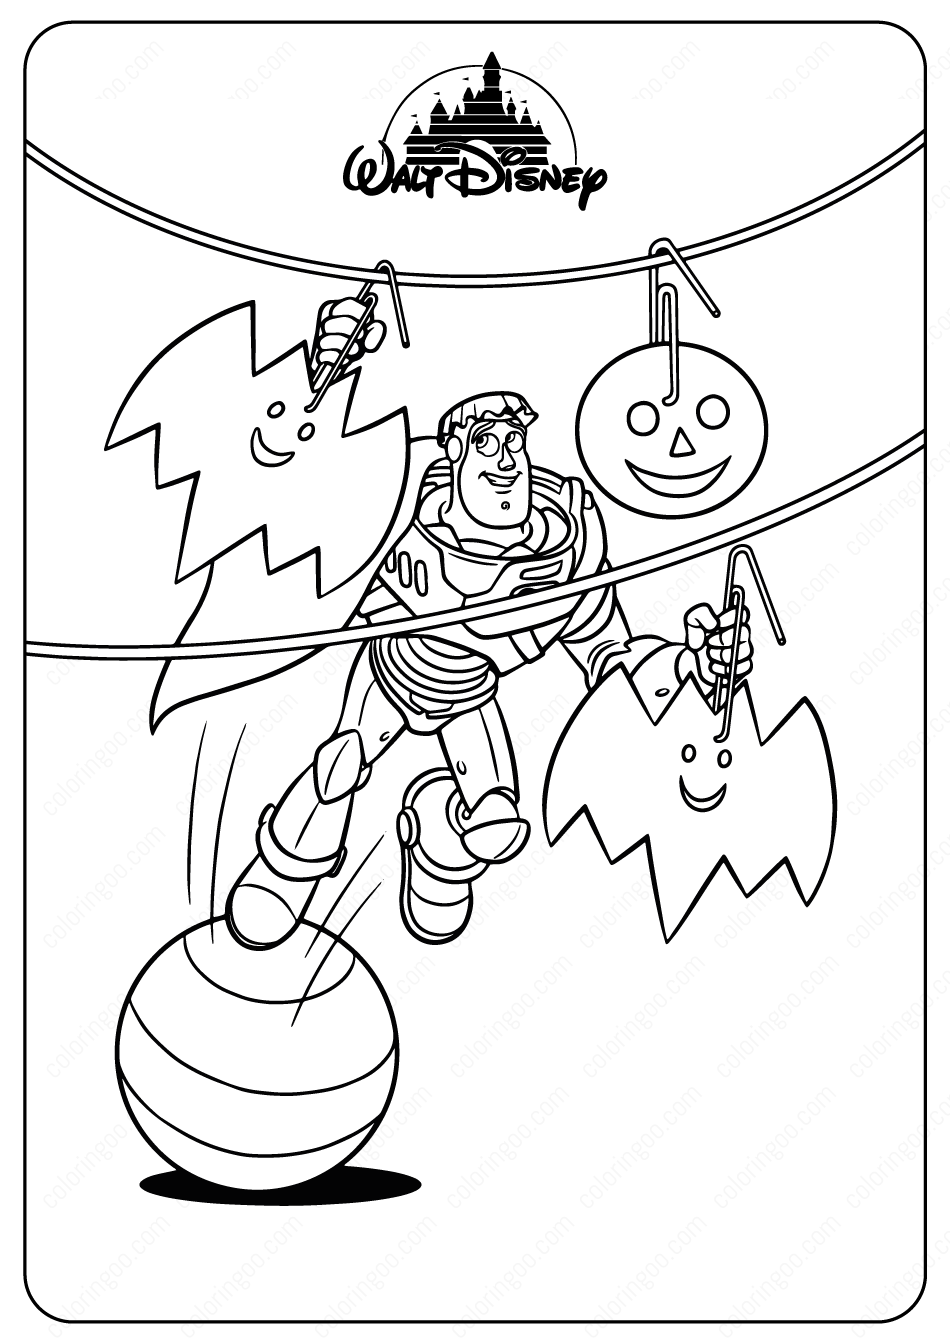 Coloring Pages Halloween Forids Disney Free – Dialogueeurope | 1344x950